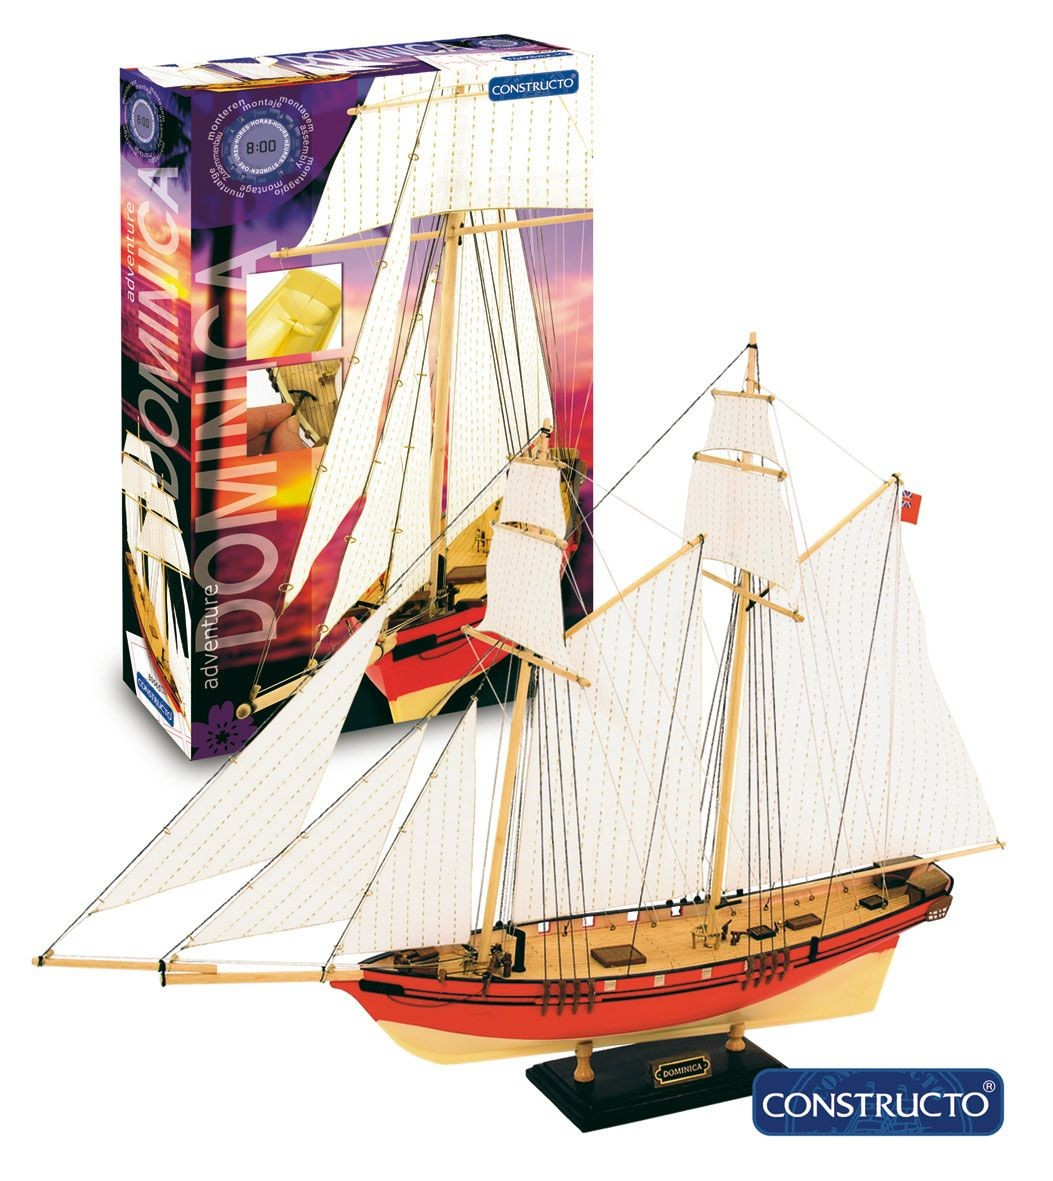 Dominica Entry Level Ship Kit (Constructo)